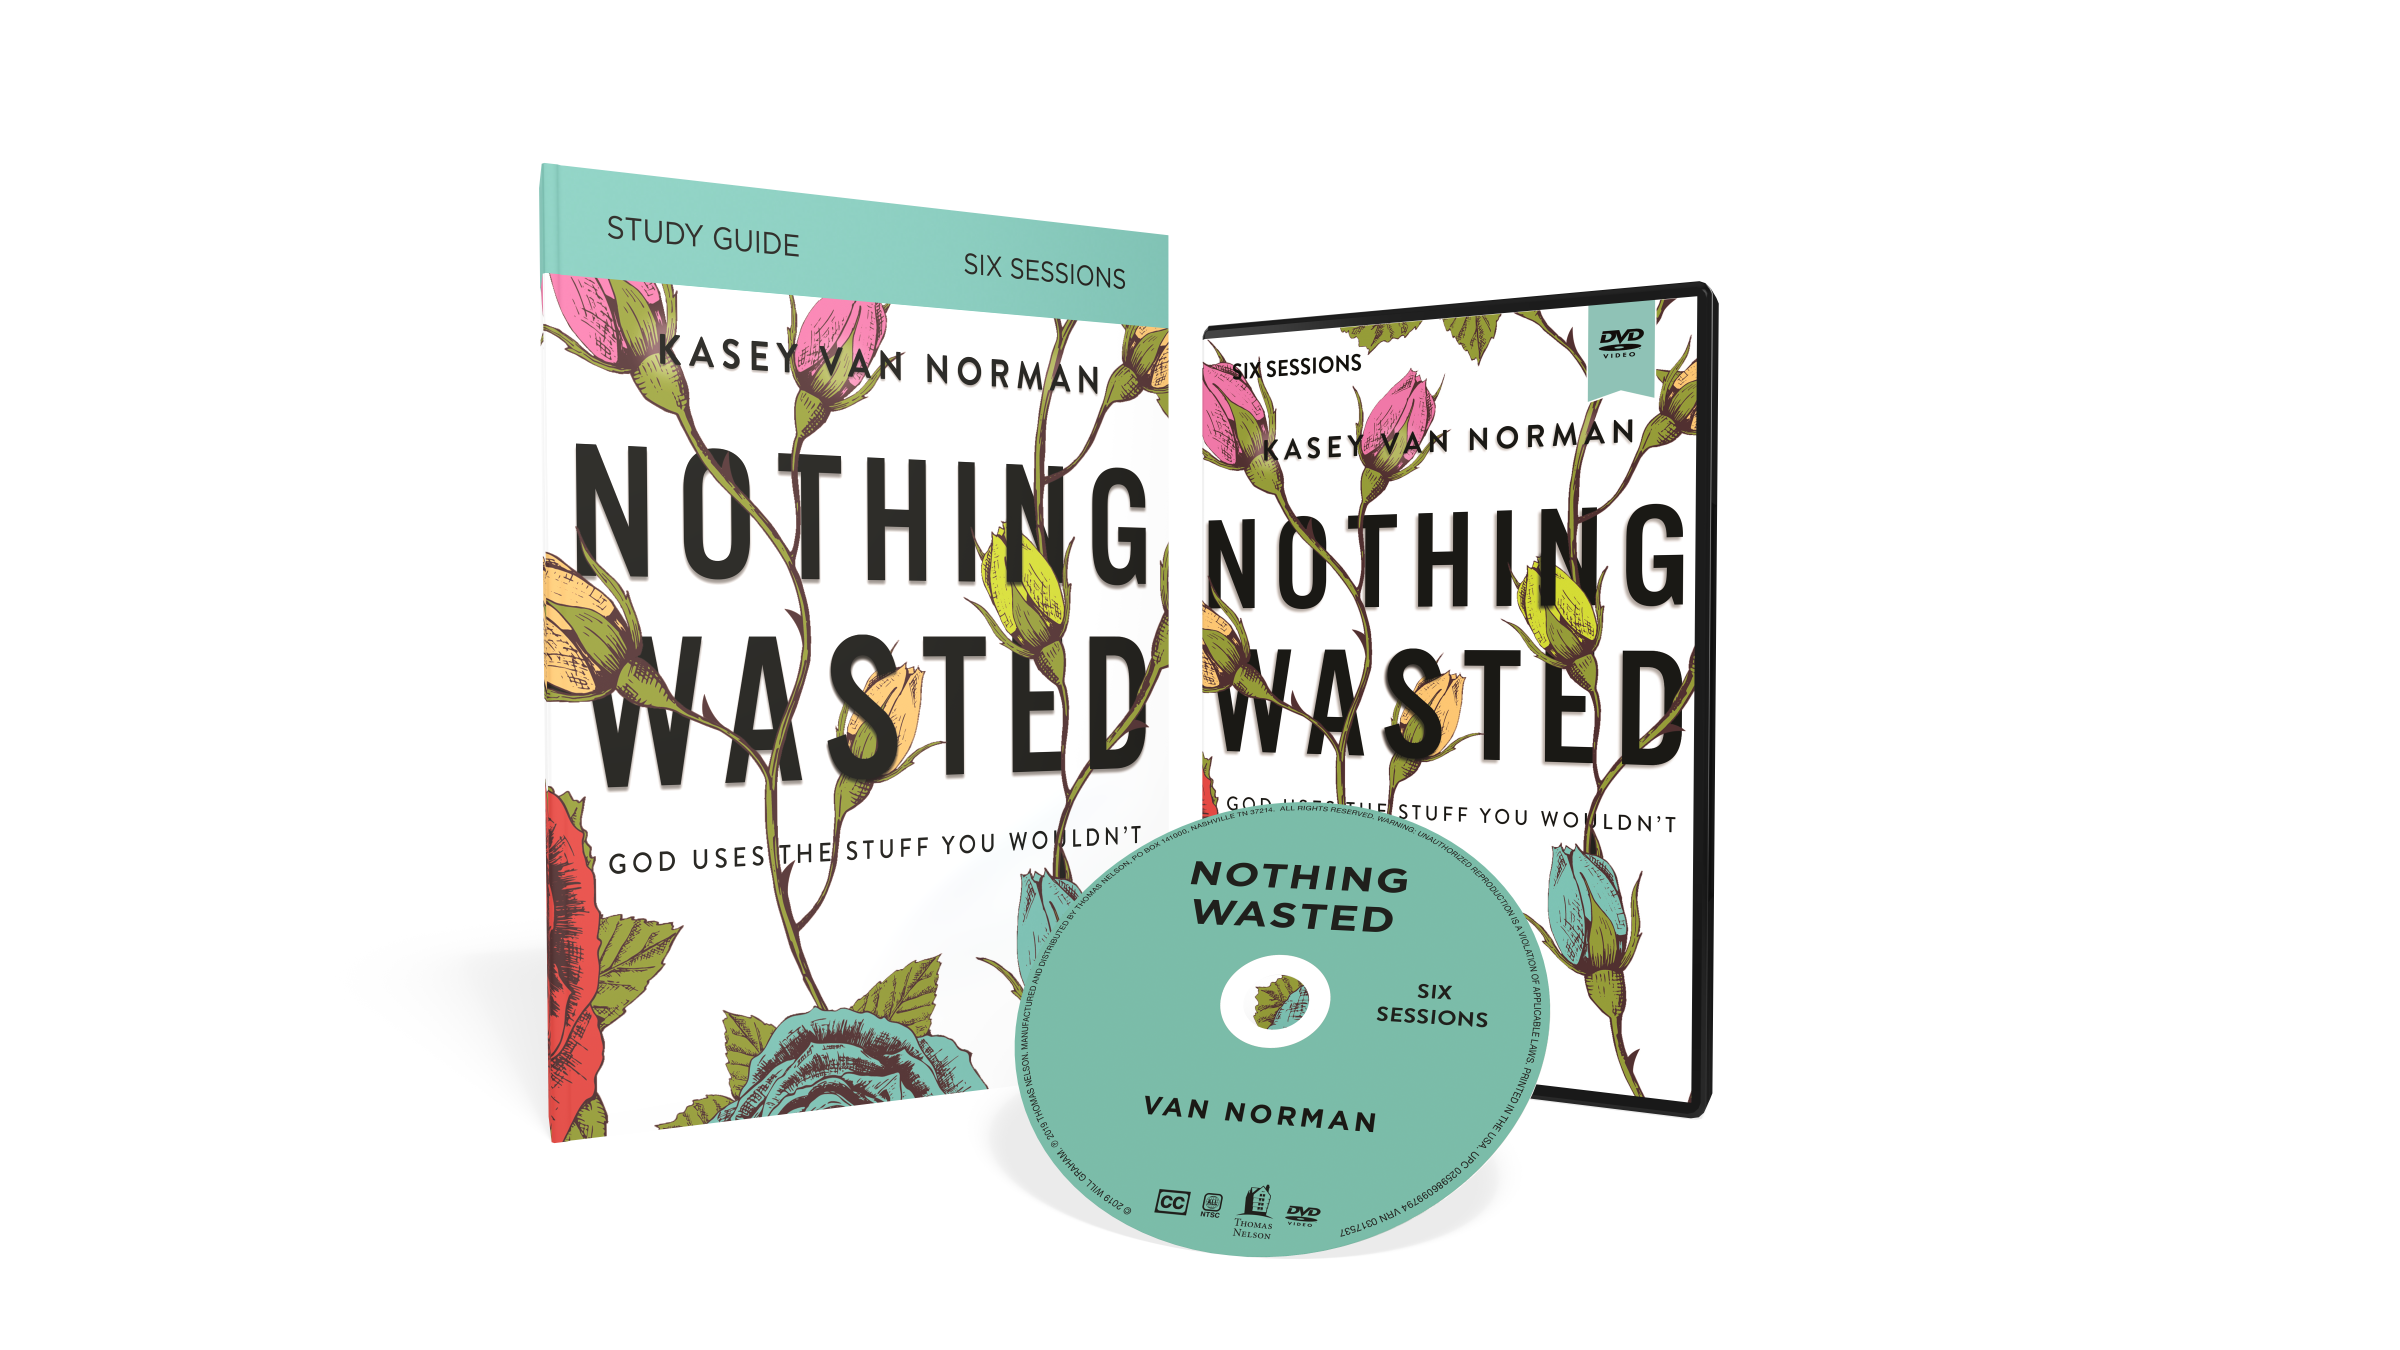 NOTHING WASTED - 6 SESSION BIBLE STUDYAvailable November 12 (pre-order wherever Christian books are sold).